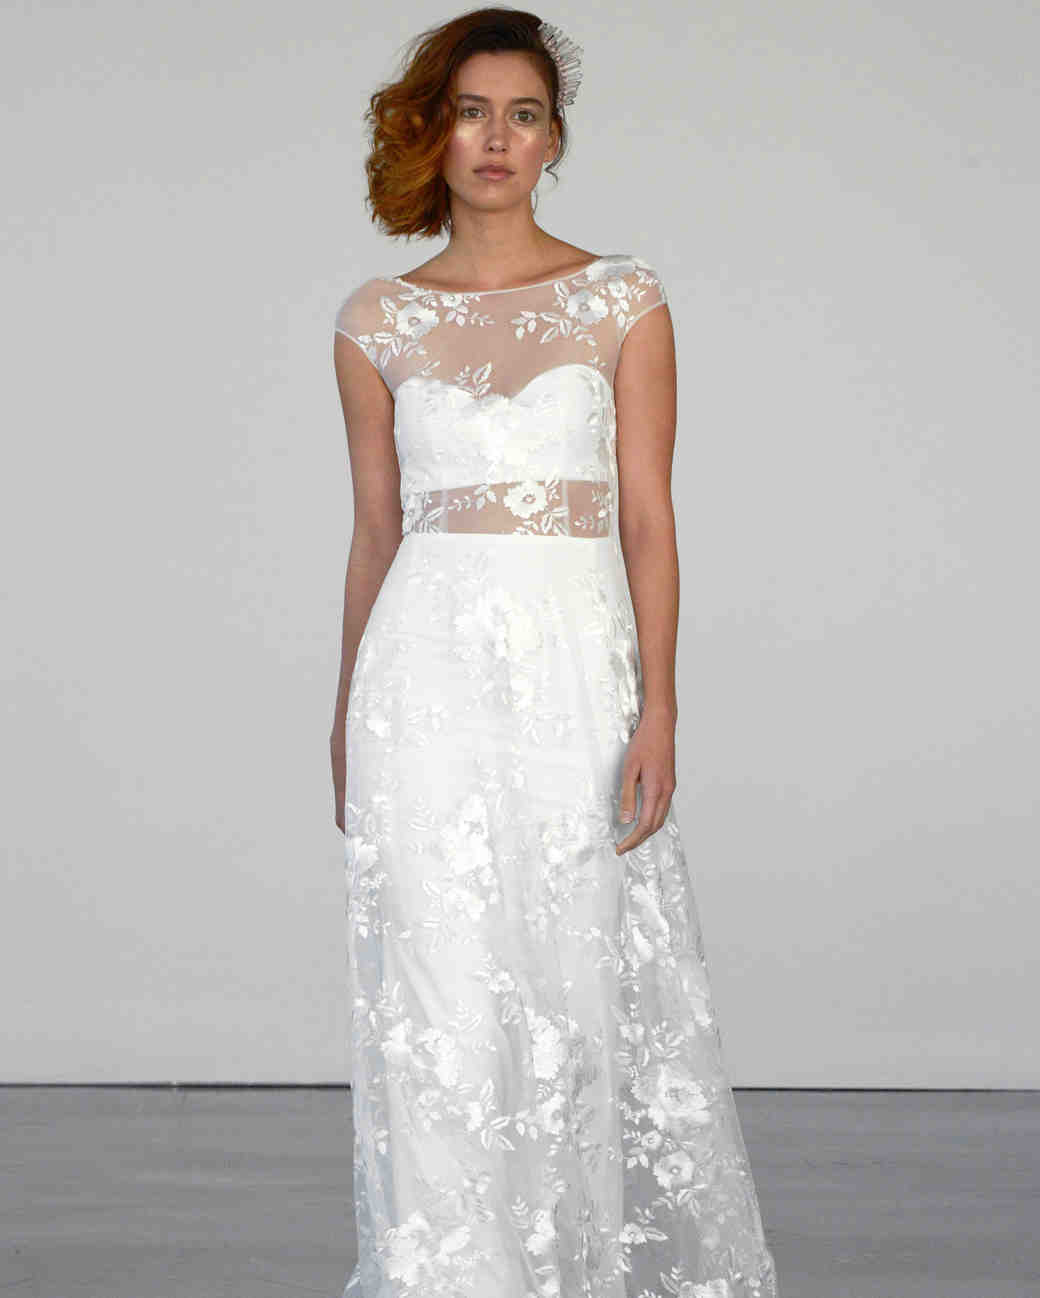 Rime Arodaky wedding dress 23 Fall 2017